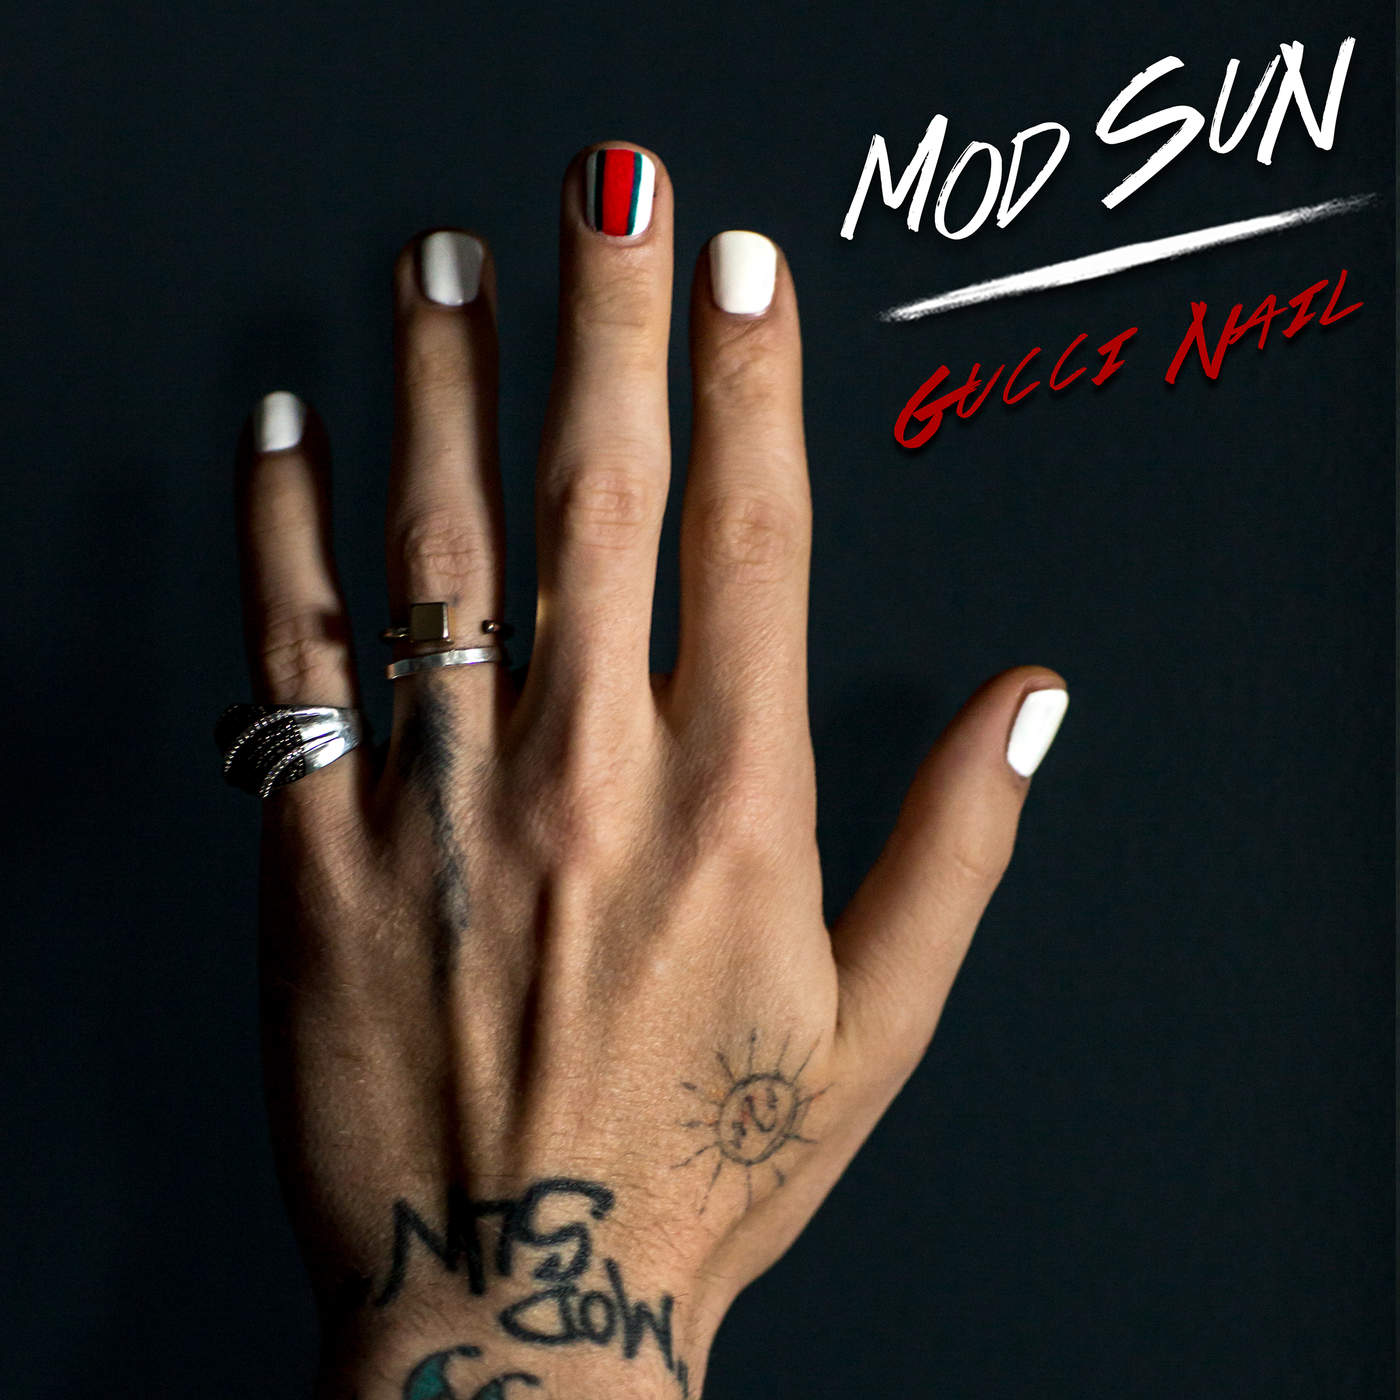 MOD SUN - Gucci Nail - Single Cover